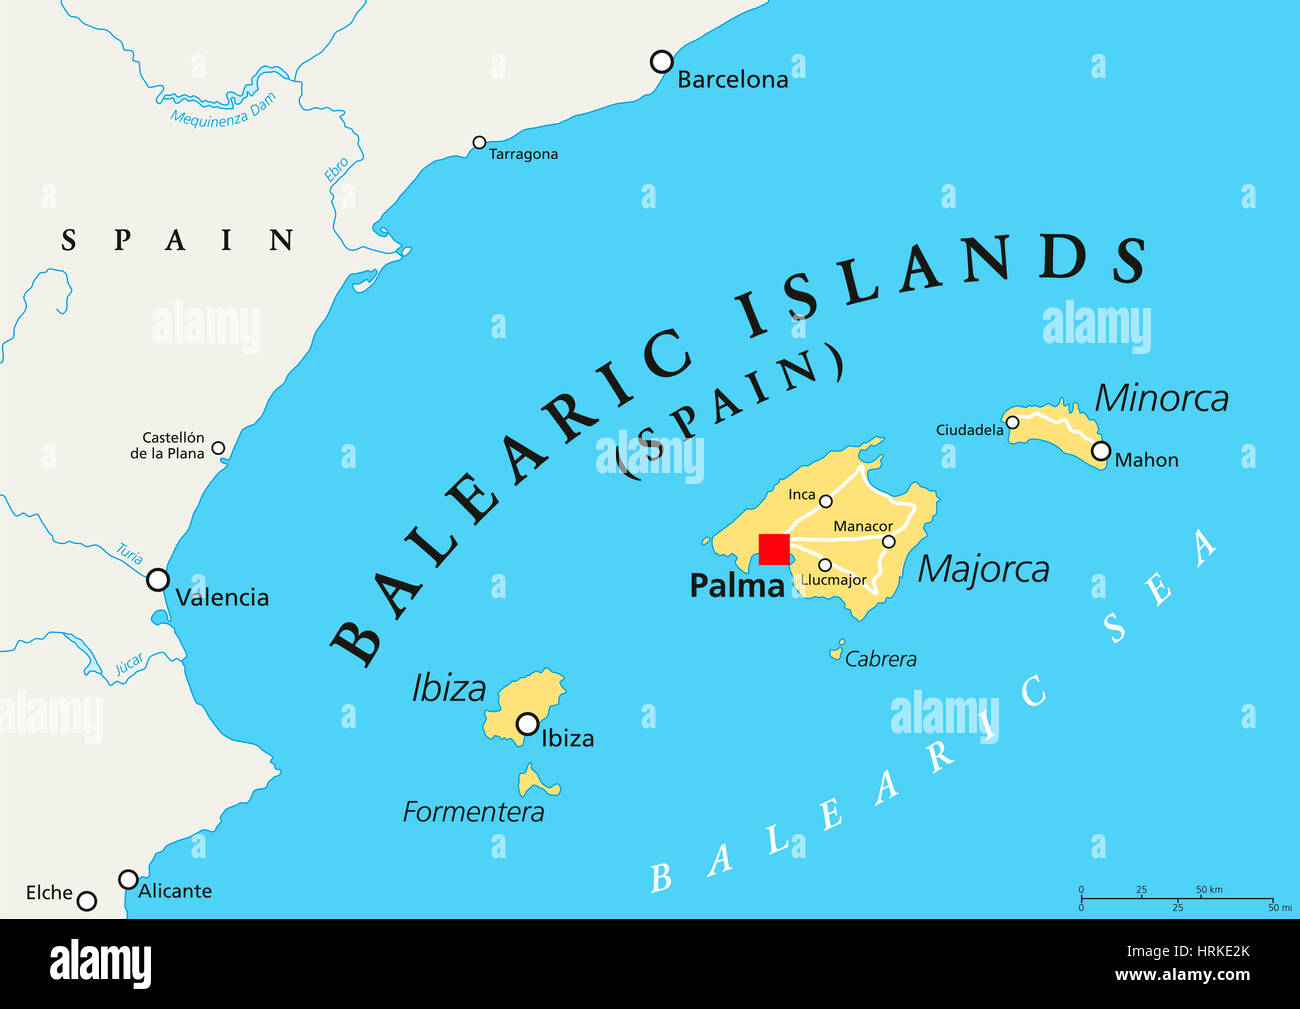 Balearic Islands Map Stock Photos & Balearic Islands Map Stock ...